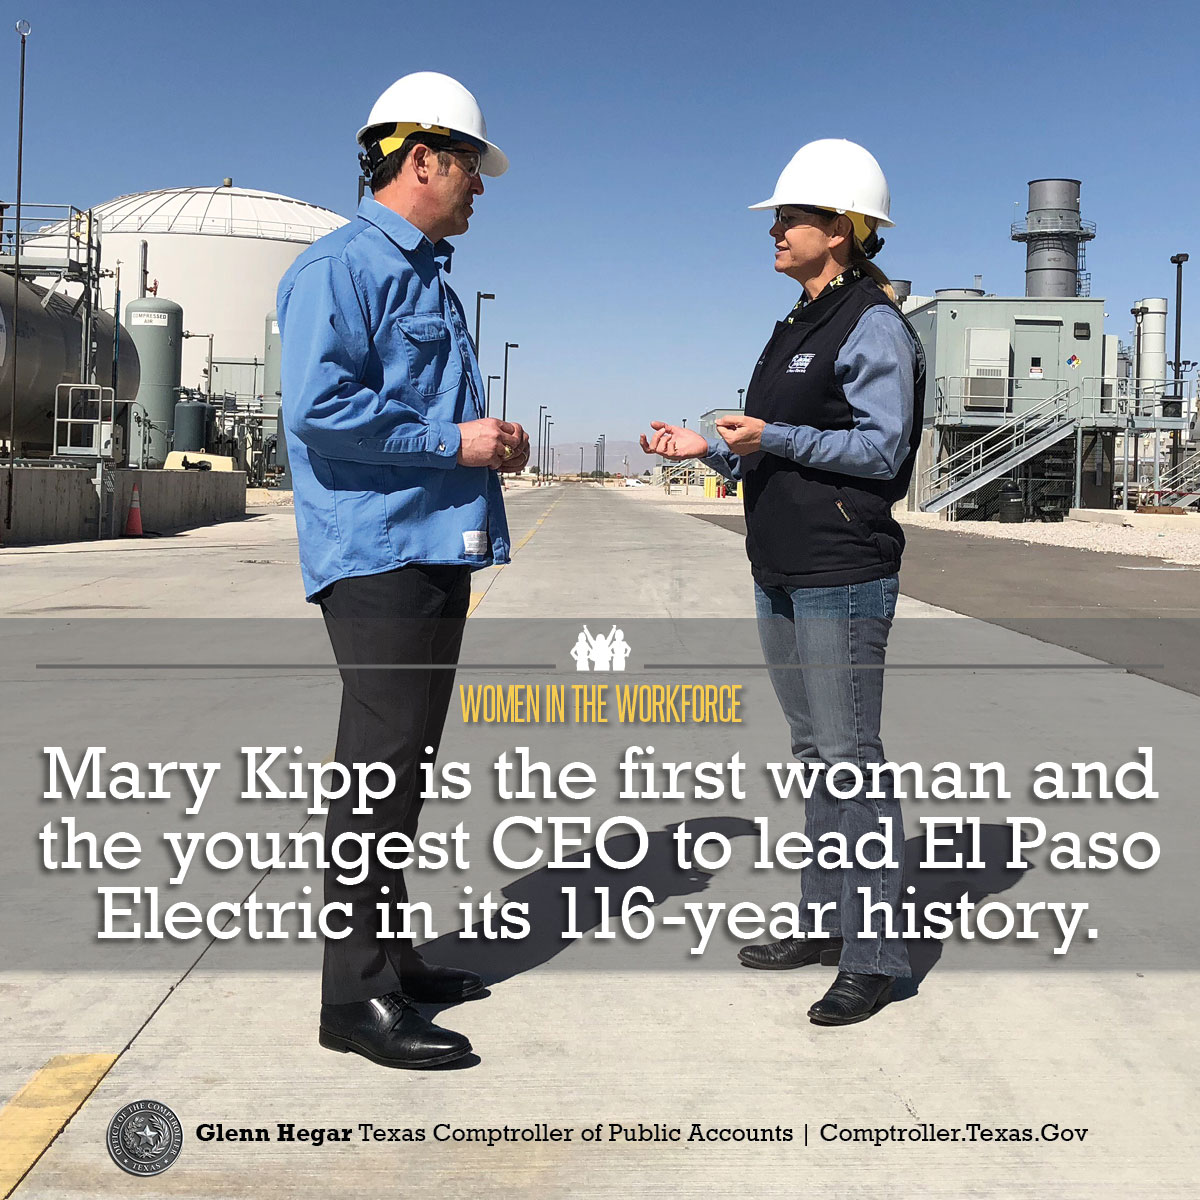 Women in the Workforce -  Mary Kipp is the first woman and the youngest CEO to lead El Paso Electric in its 116-year history.